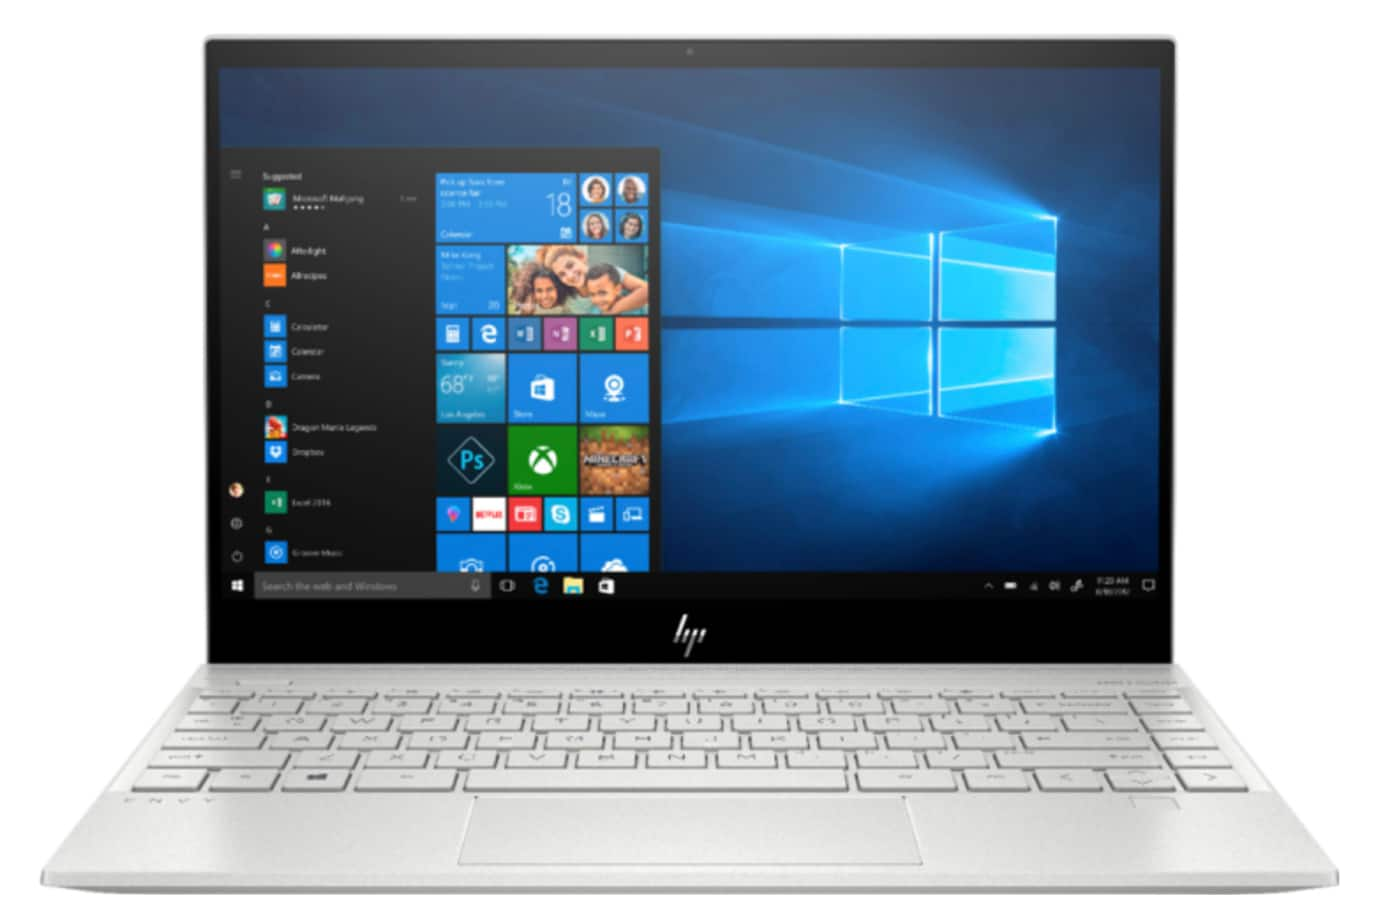 "HP - ENVY 13.3"" 4K Ultra HD Touch-Screen Laptop - Intel Core i7 - 8GB Memory - 512GB SSD $699.99"